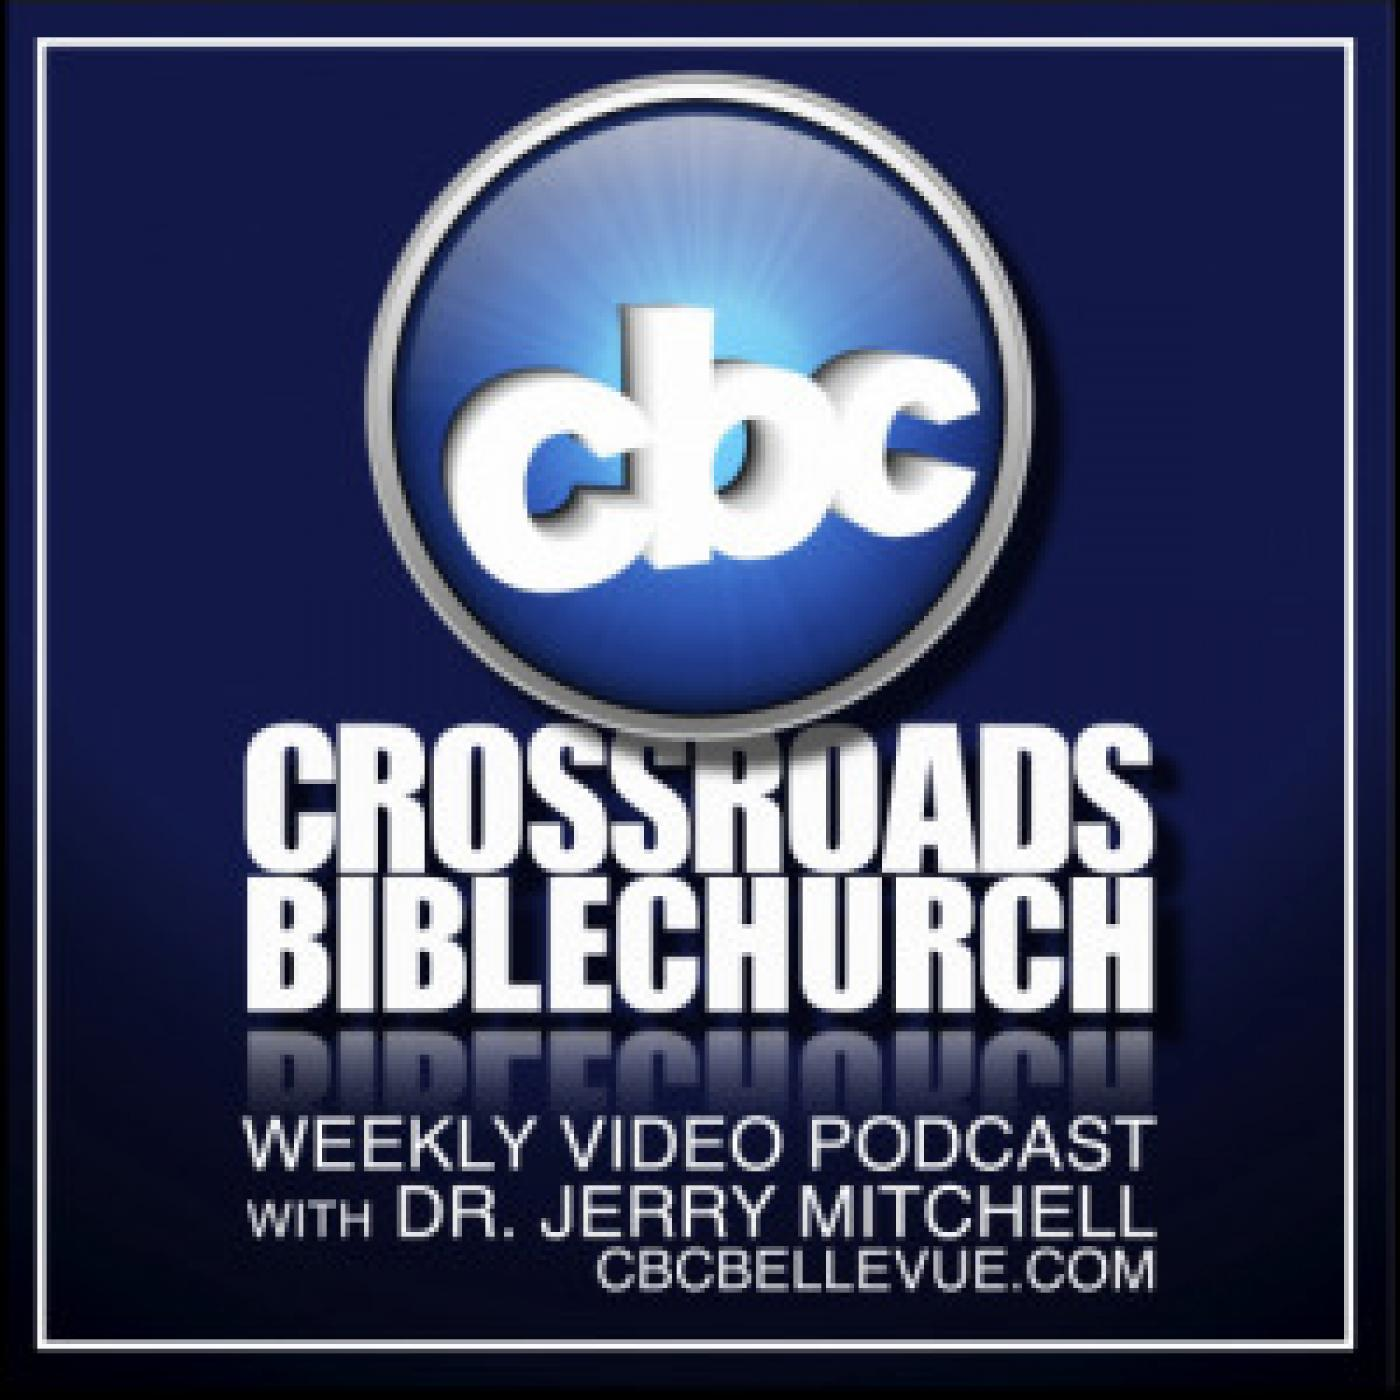 Crossroads Bible Church Video Podcast